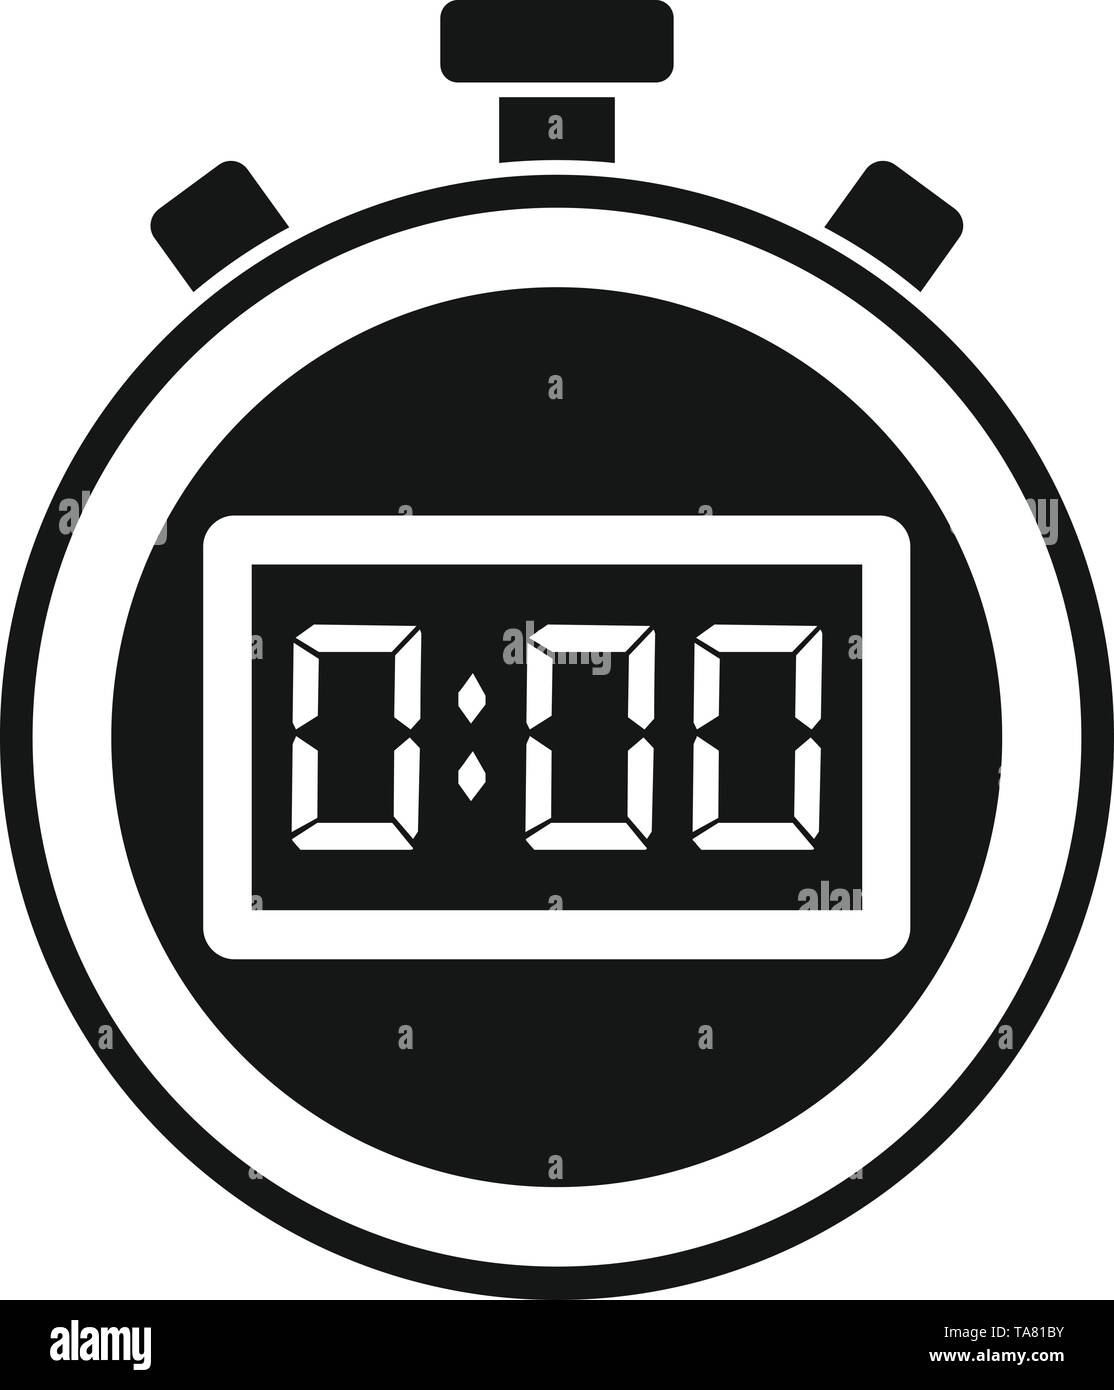 Sport stopwatch icon. Simple illustration of sport stopwatch vector icon for web design isolated on white background - Stock Image